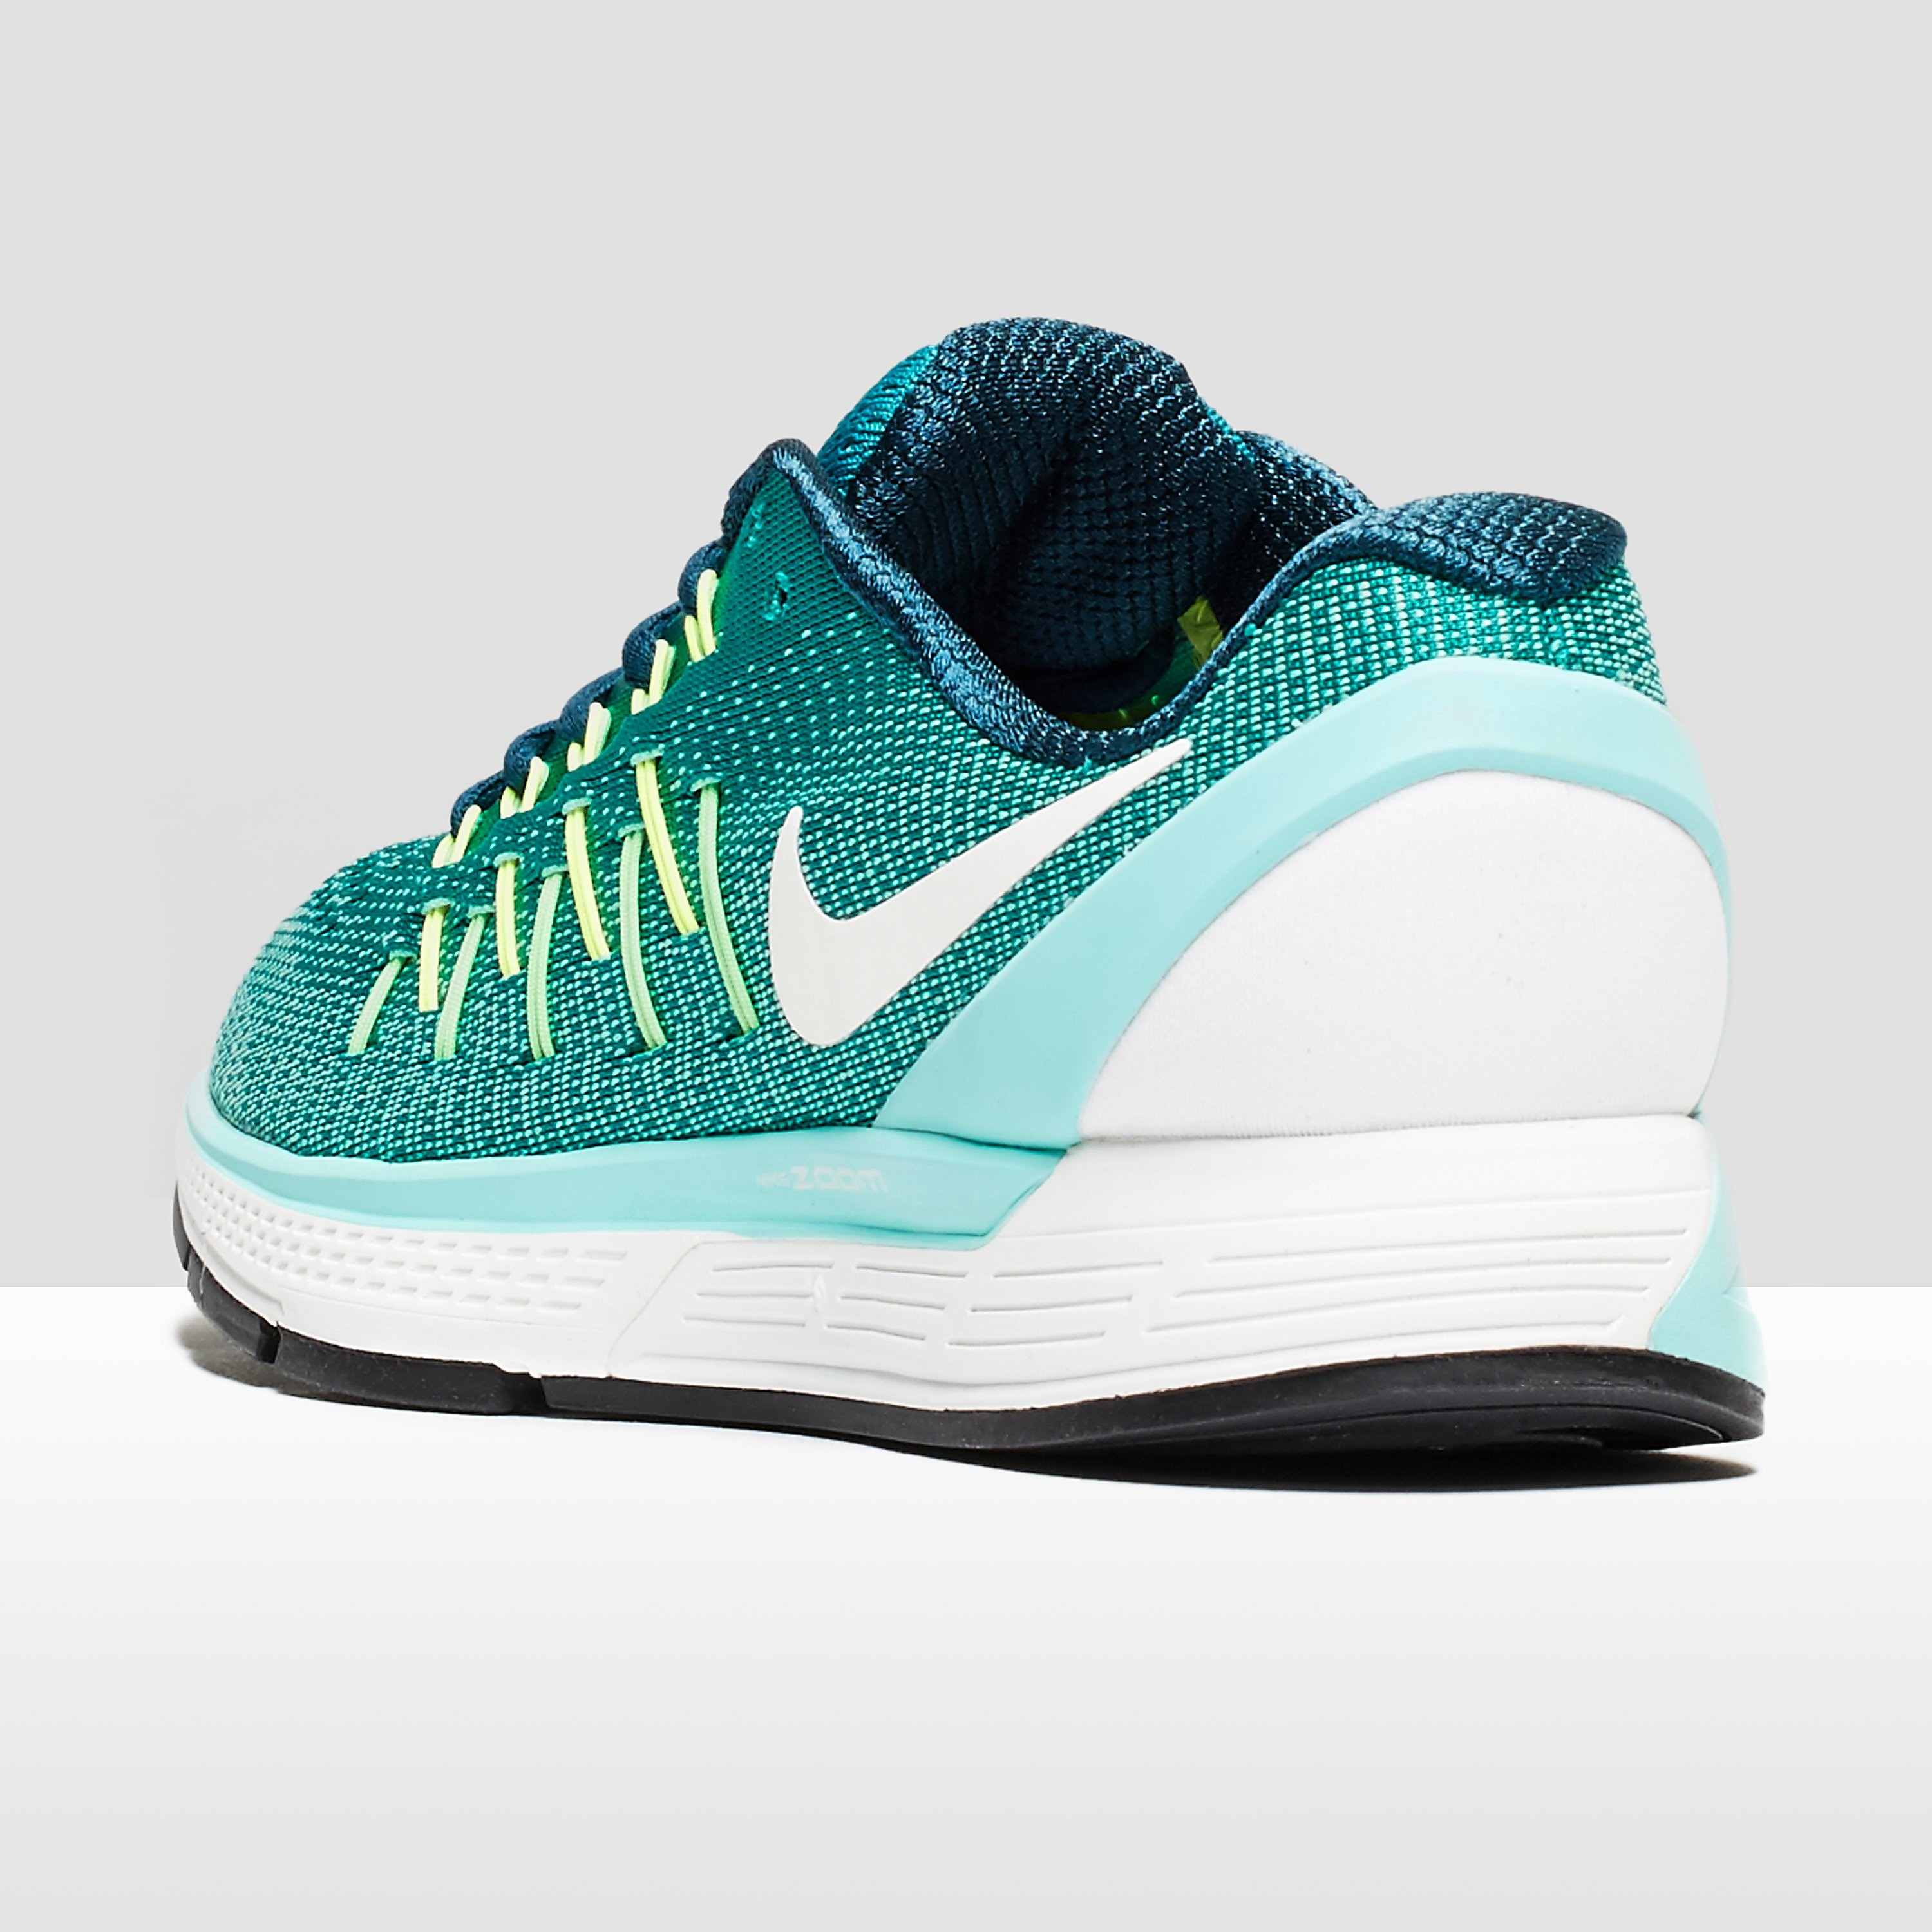 Nike Zoom Odyssey 2 Women's Running Shoes